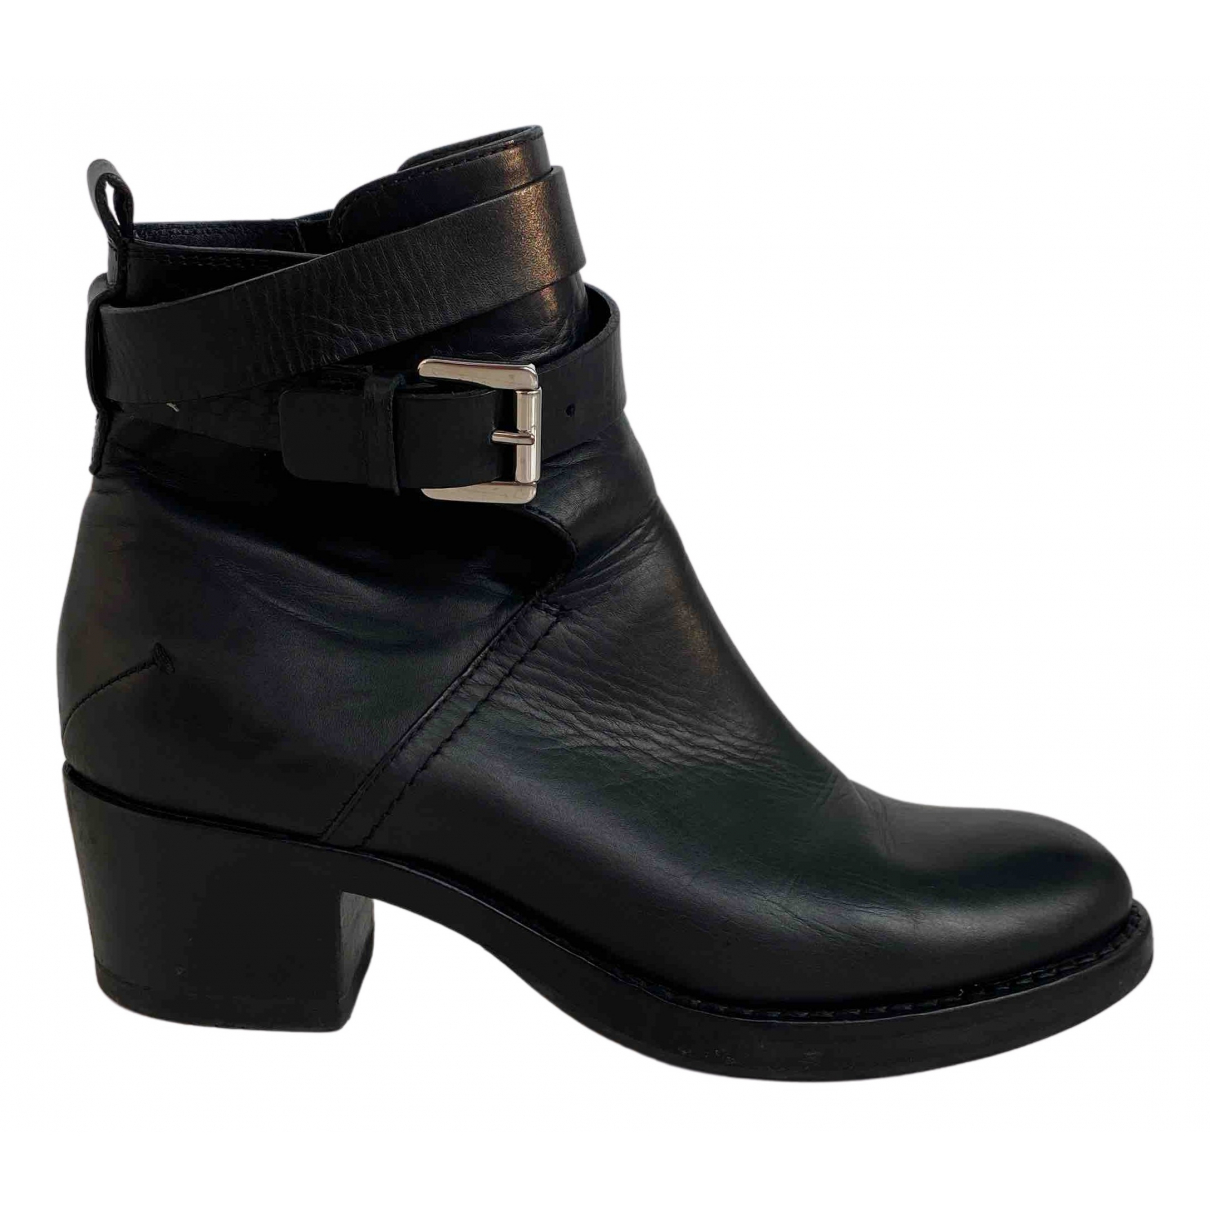 Costume National N Black Leather Boots for Women 38.5 EU